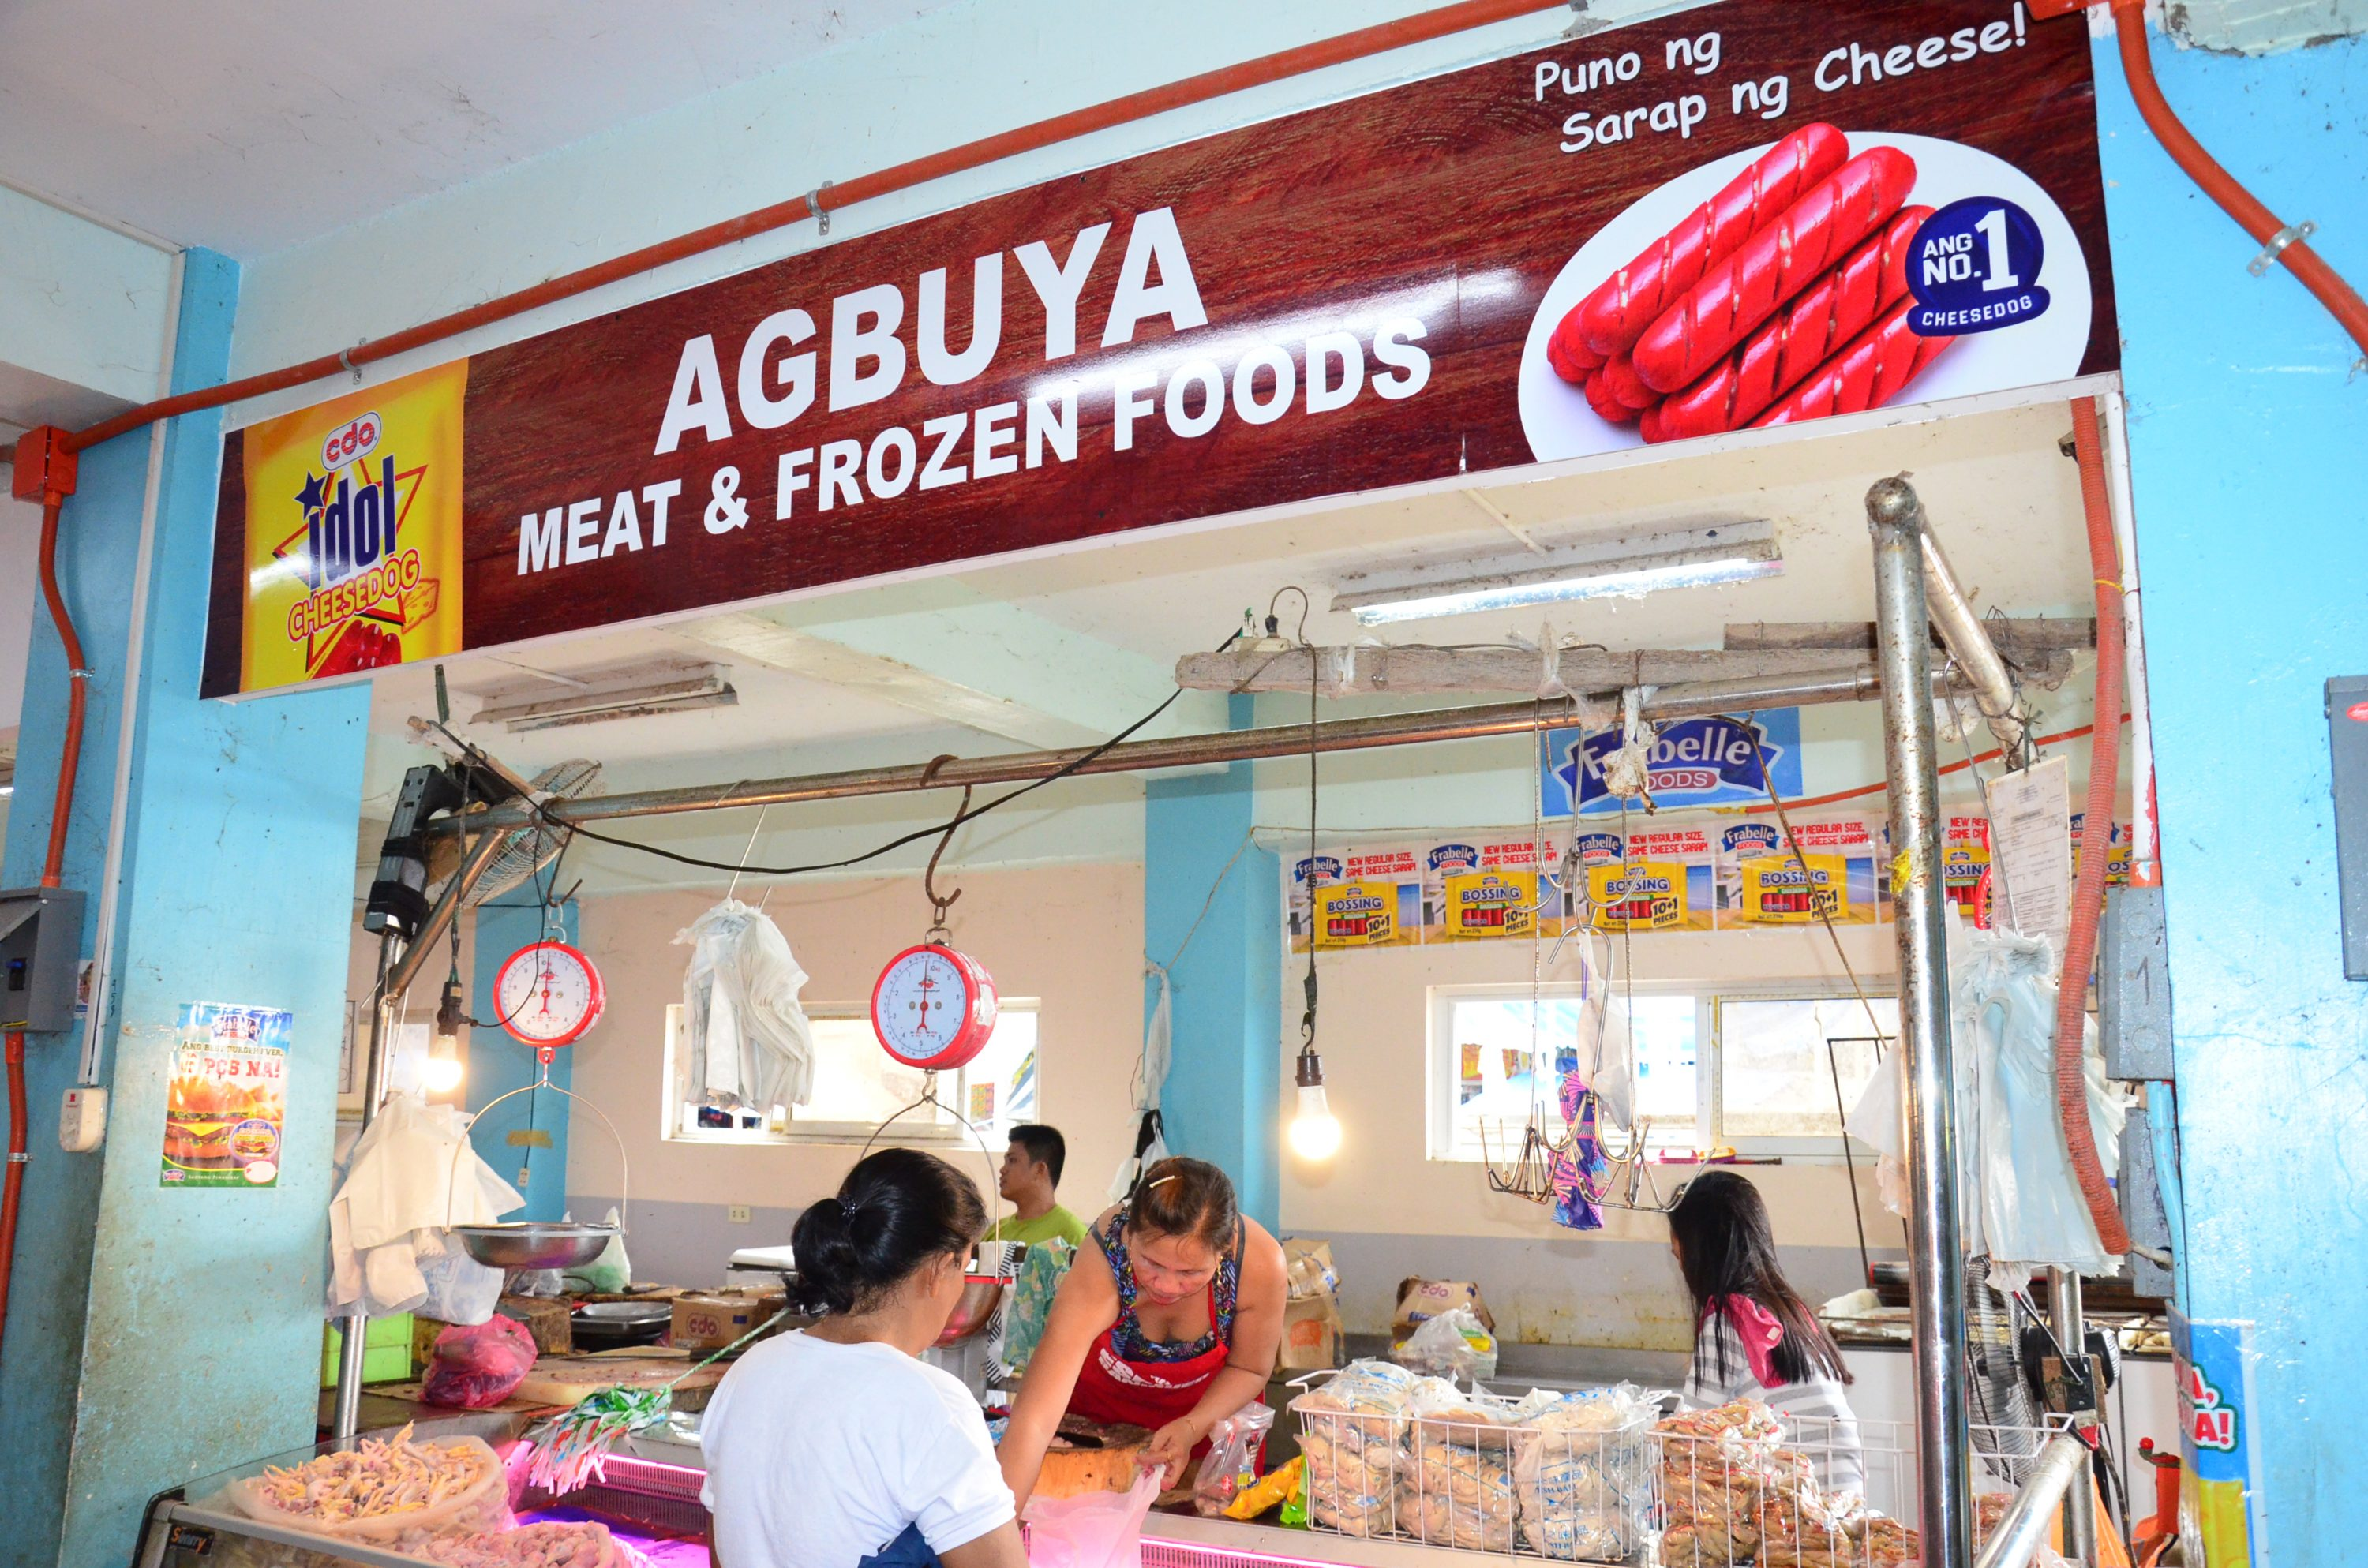 Uniform Signages in Meat Section